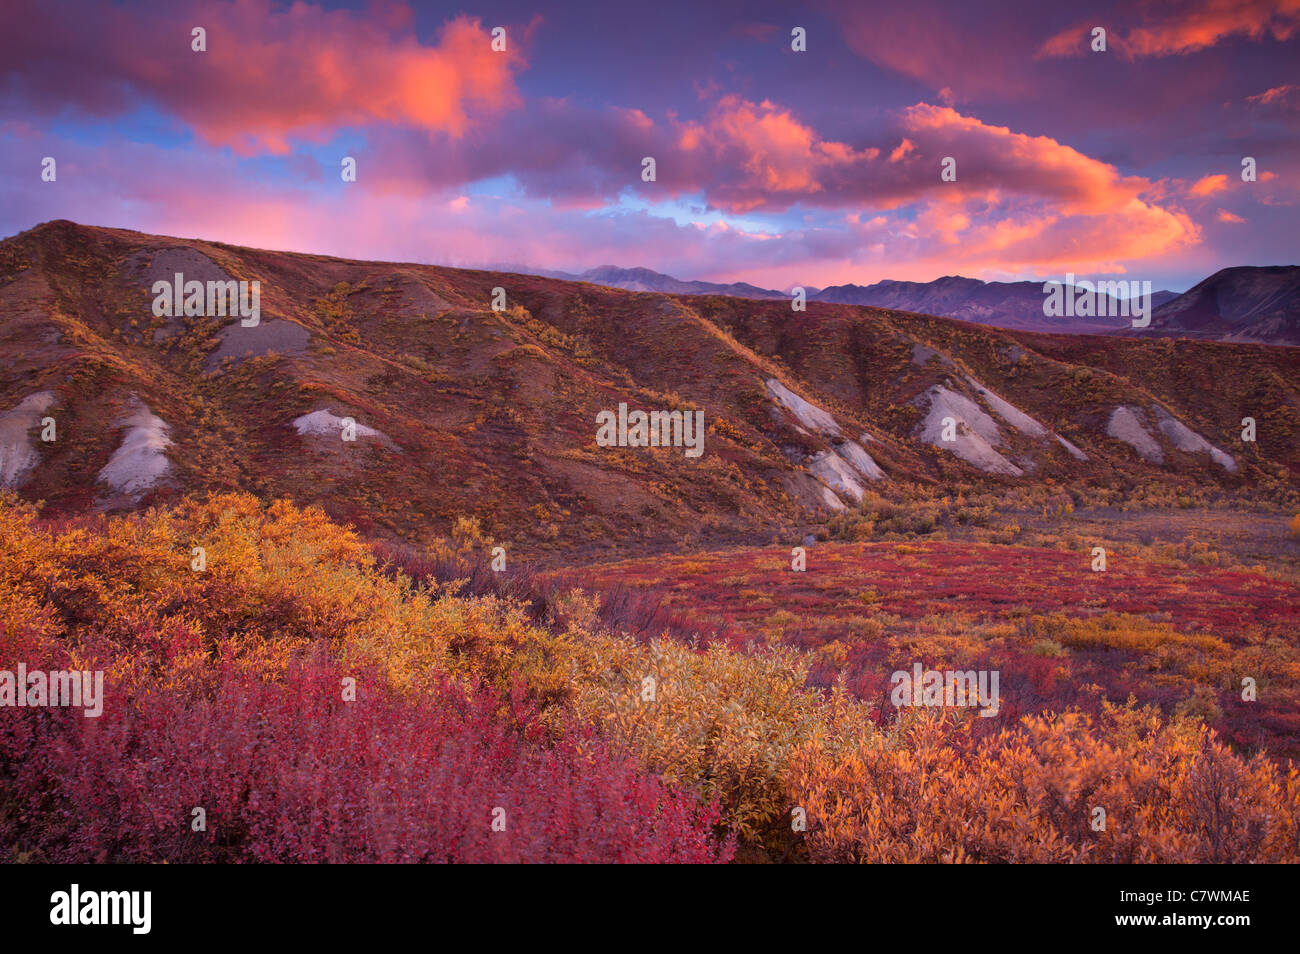 Sunset in Sable Pass, Denali National Park, Alaska. - Stock Image